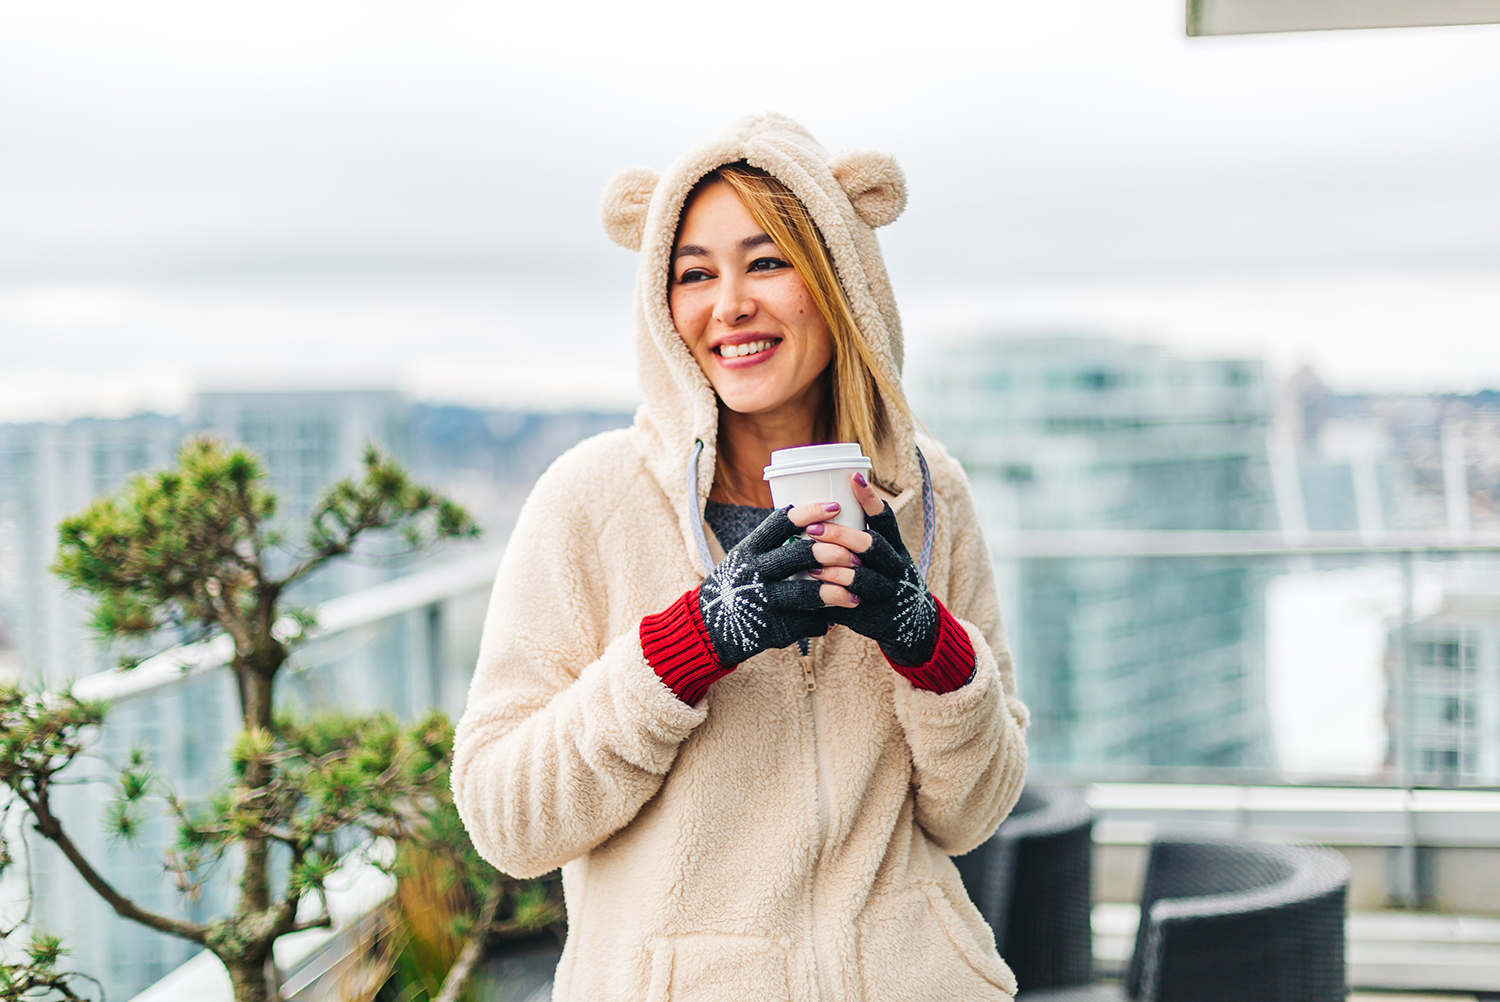 "Bearpaw   Hoodie   // Bearpaw   Fingerless Gloves     // Use Code "" BPAMBCW "" FOR 20% OFF YOUR BEARPAW.COM ORDER"